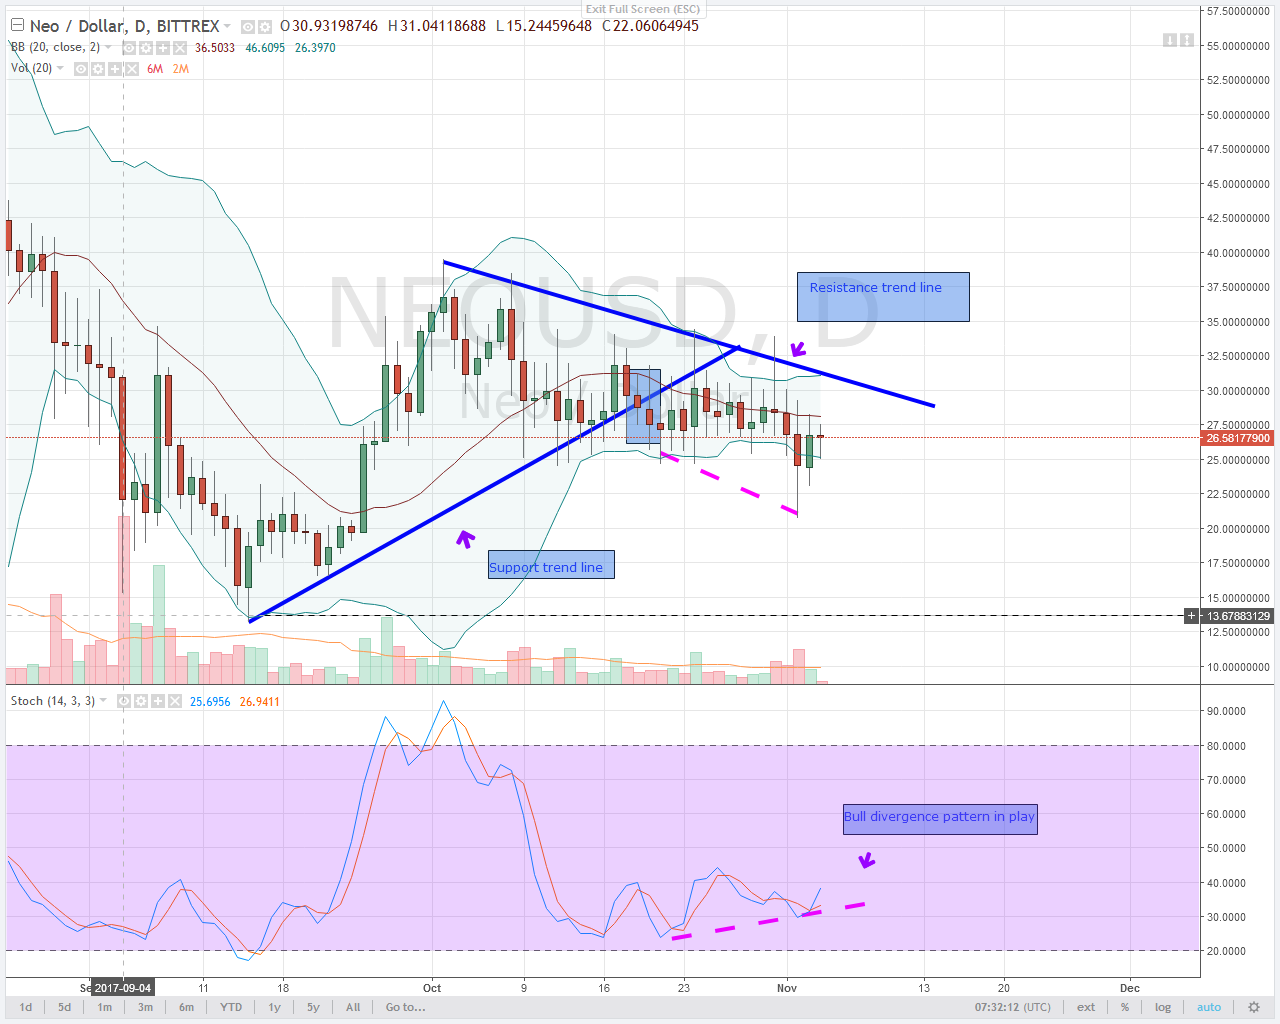 bull divergence in alt coin NEO daily chart